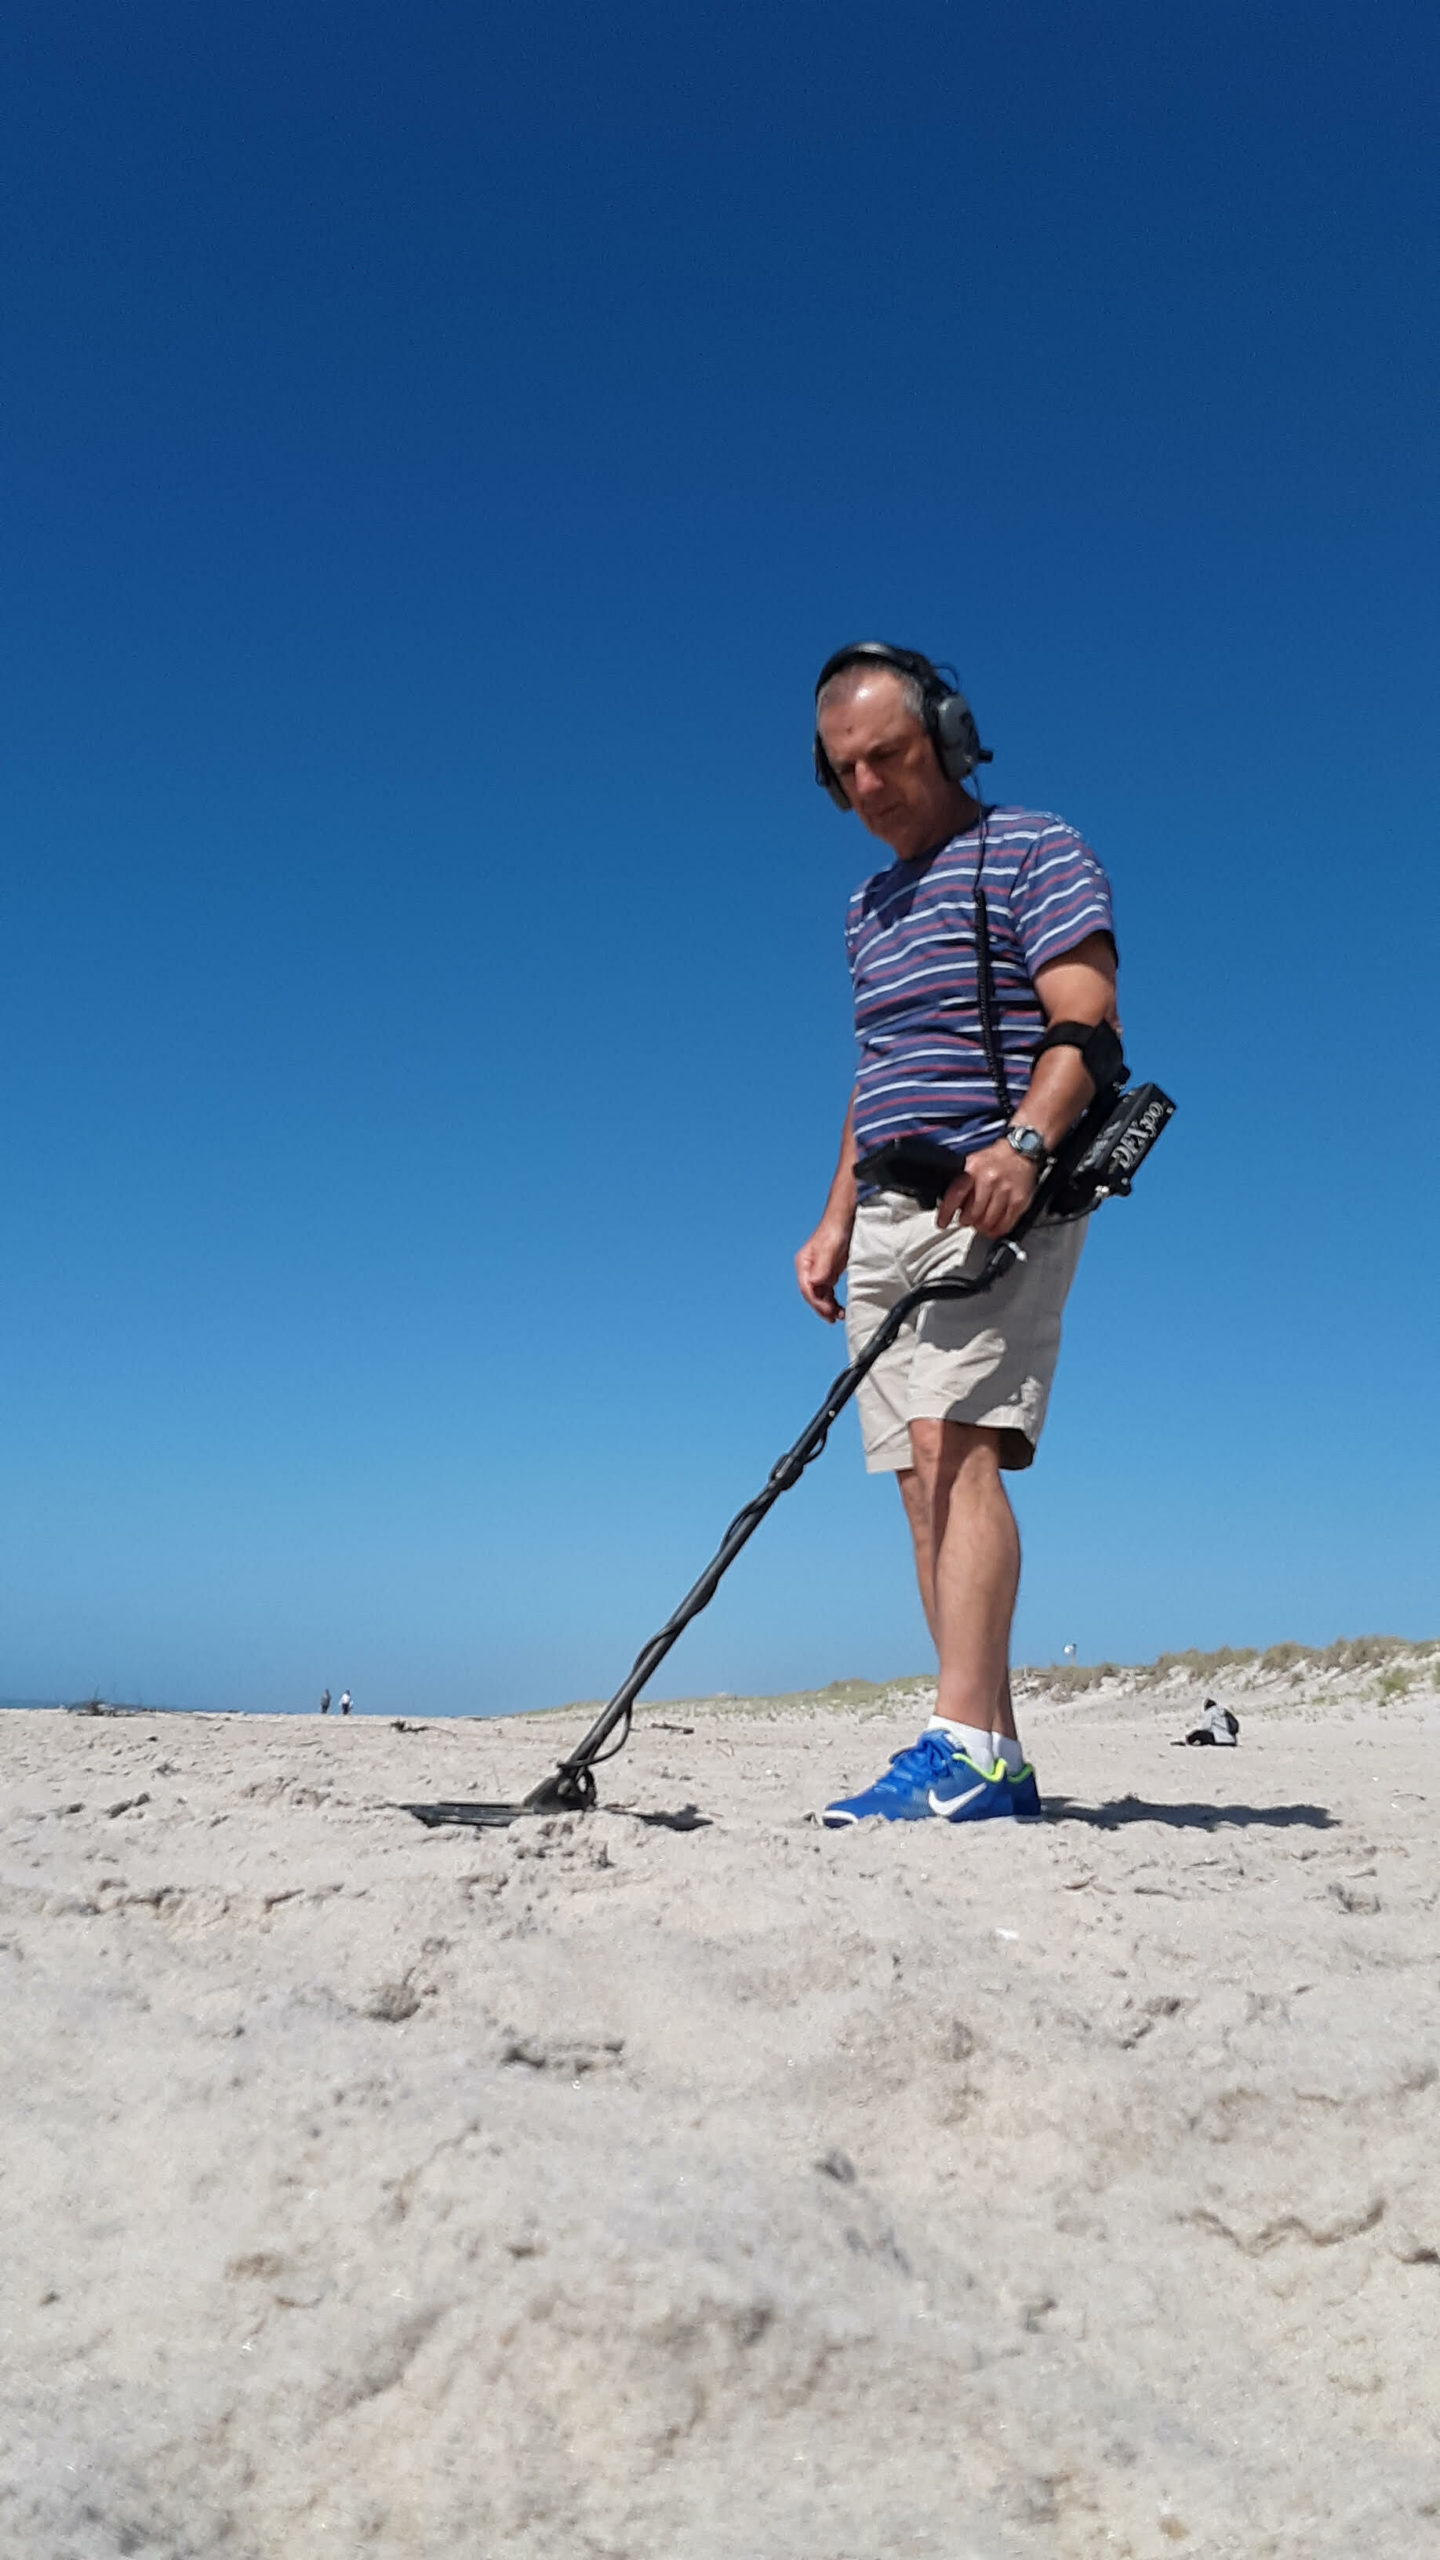 Metal detector enthusiast Peter Zegler